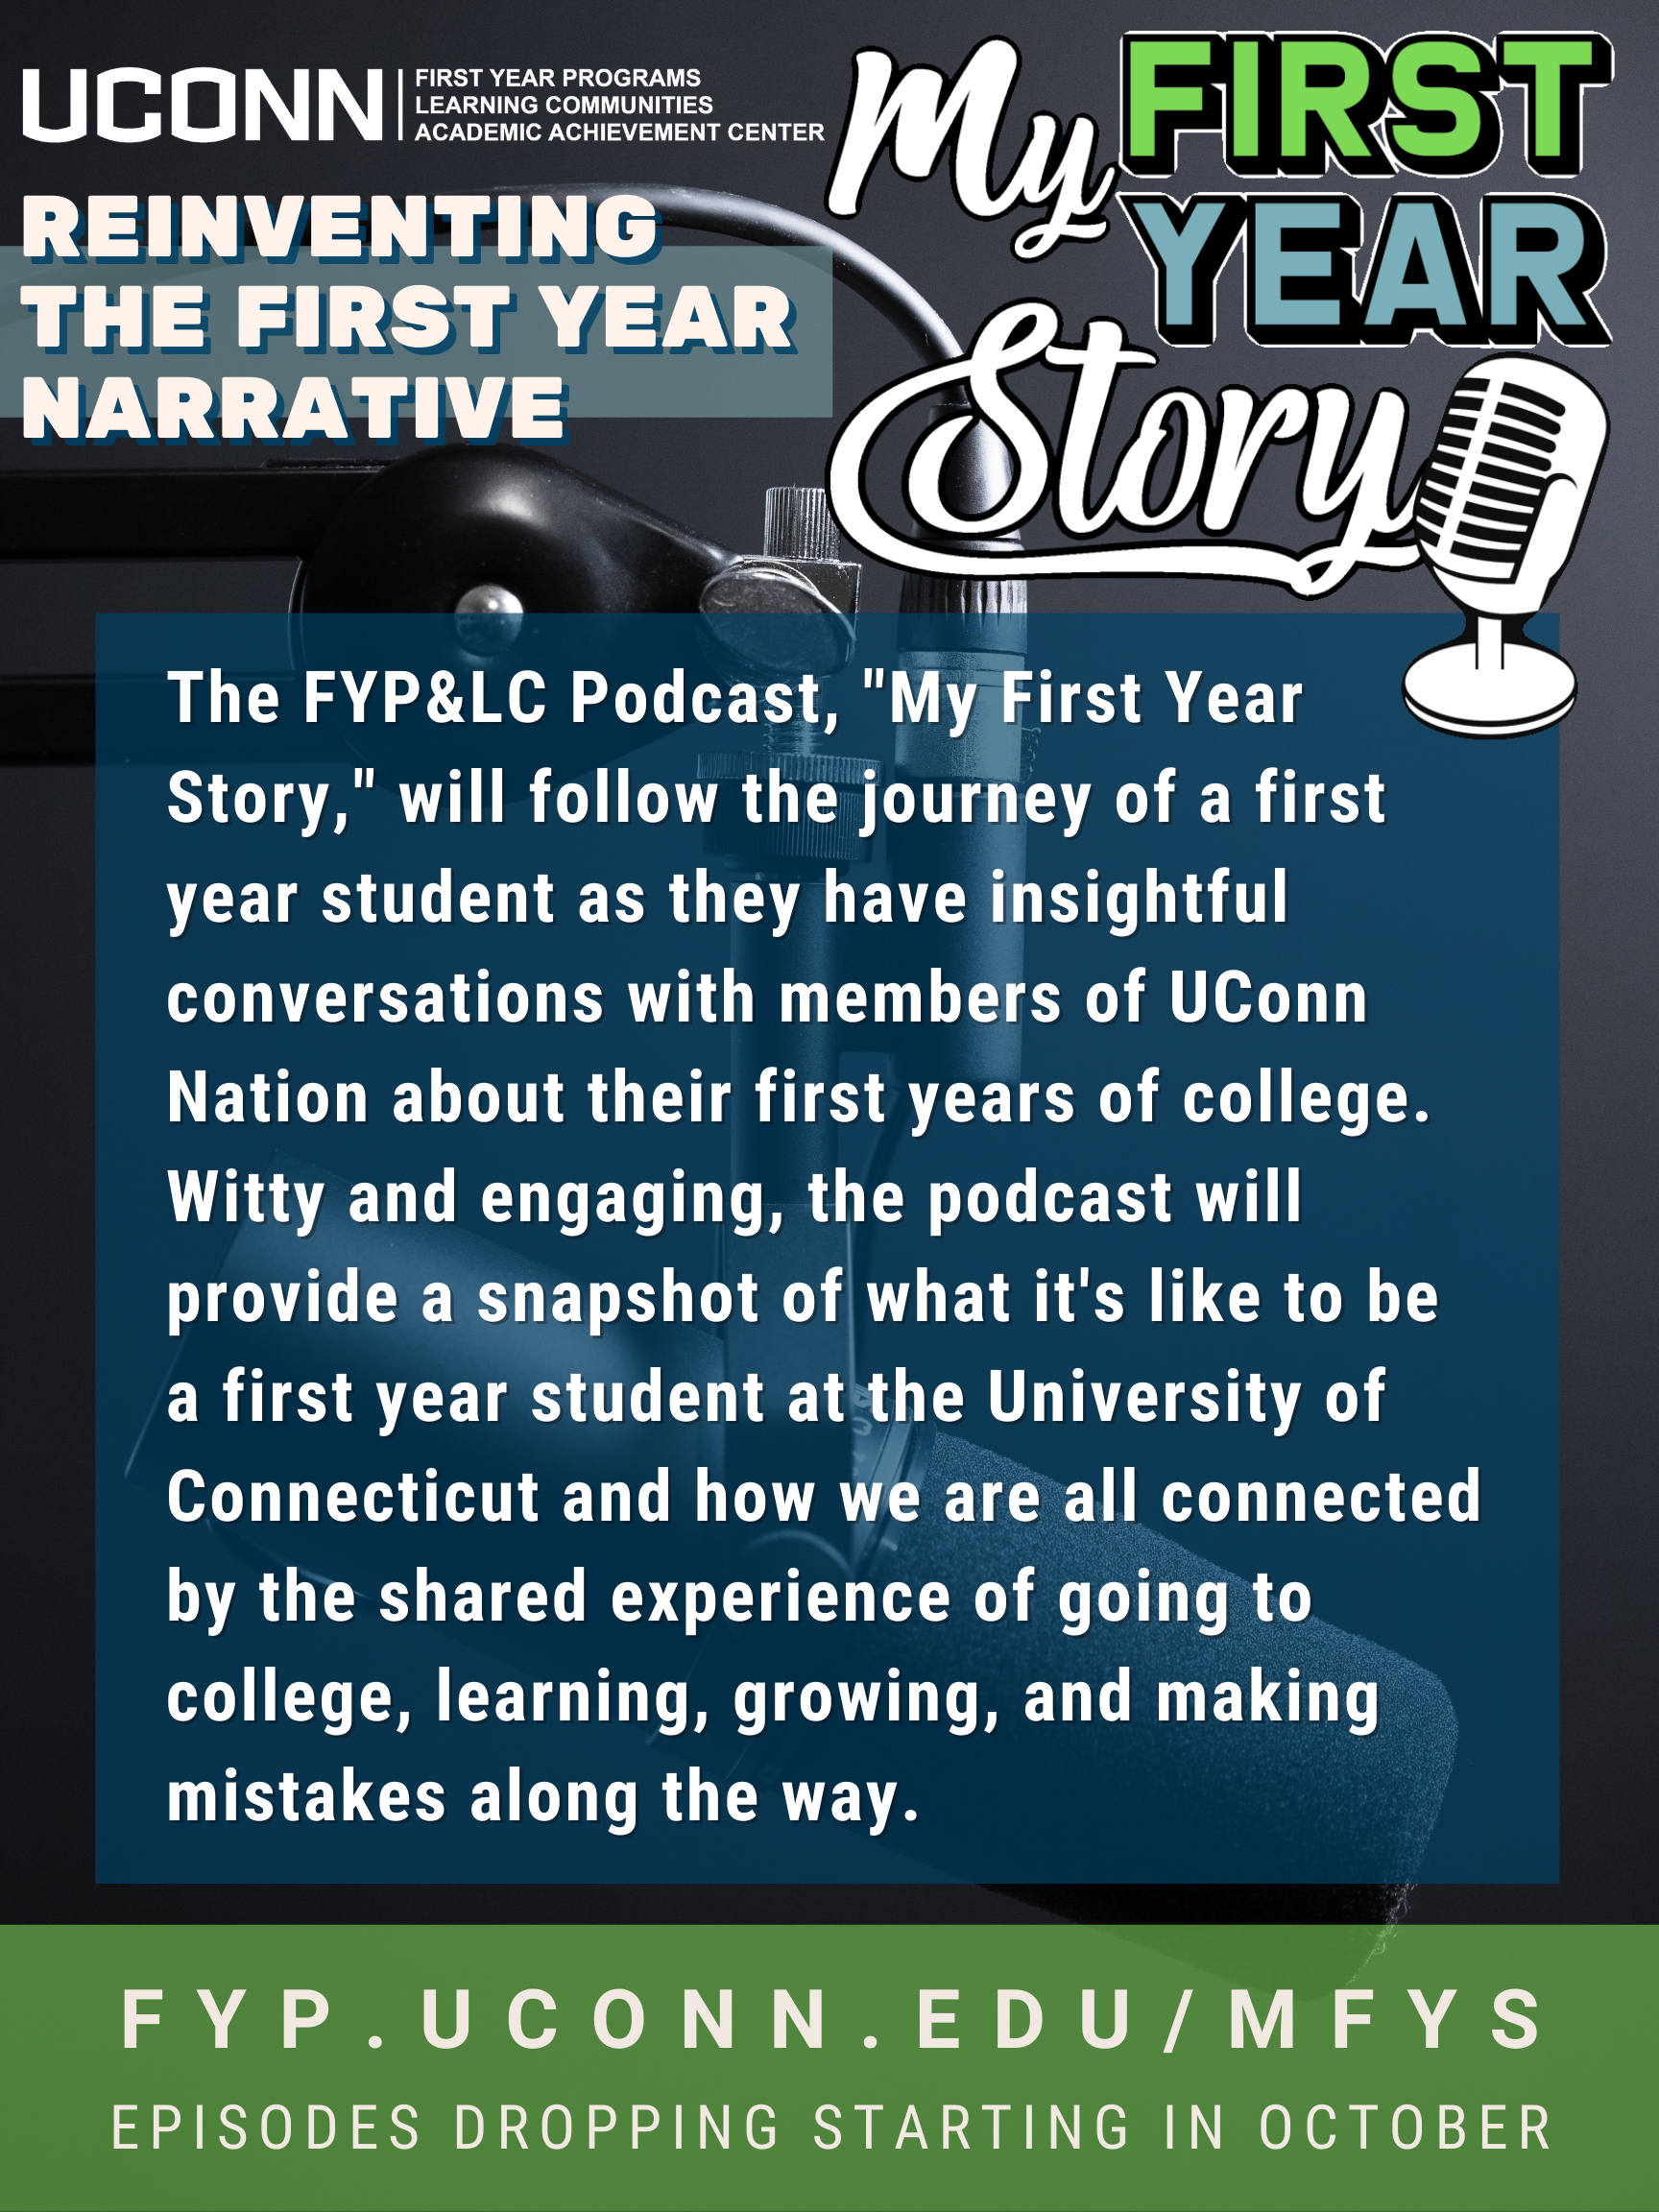 """Podcast Description: The FYP&LC Podcast, """"My First Year Story,"""" will follow the journey of a first year student as they have insightful conversations with members of UConn Nation about their first years of college. Witty and engaging, the podcast will provide a snapshot of what it's like to be a first year student at the University of Connecticut and how we are all connected by the shared experience of going to college, learning, growing, and making mistakes along the way."""